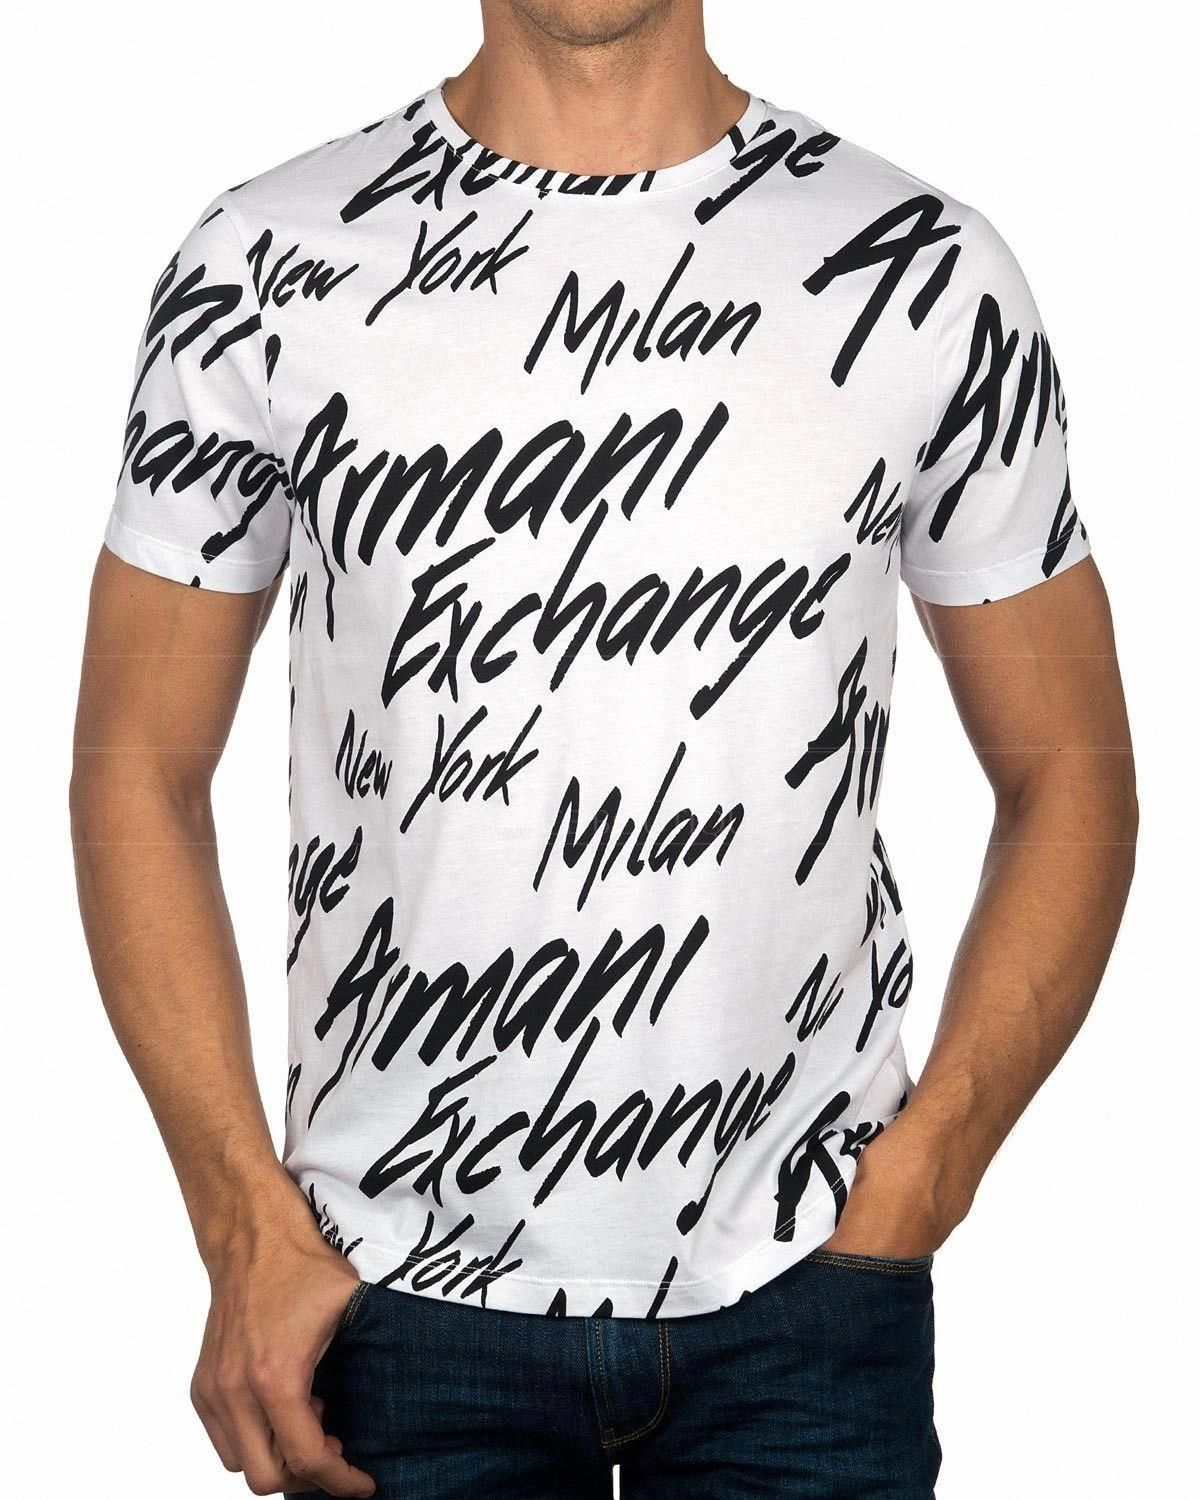 e9de705f8465 White ARMANI EXCHANGE © T-Shirt ✶ City